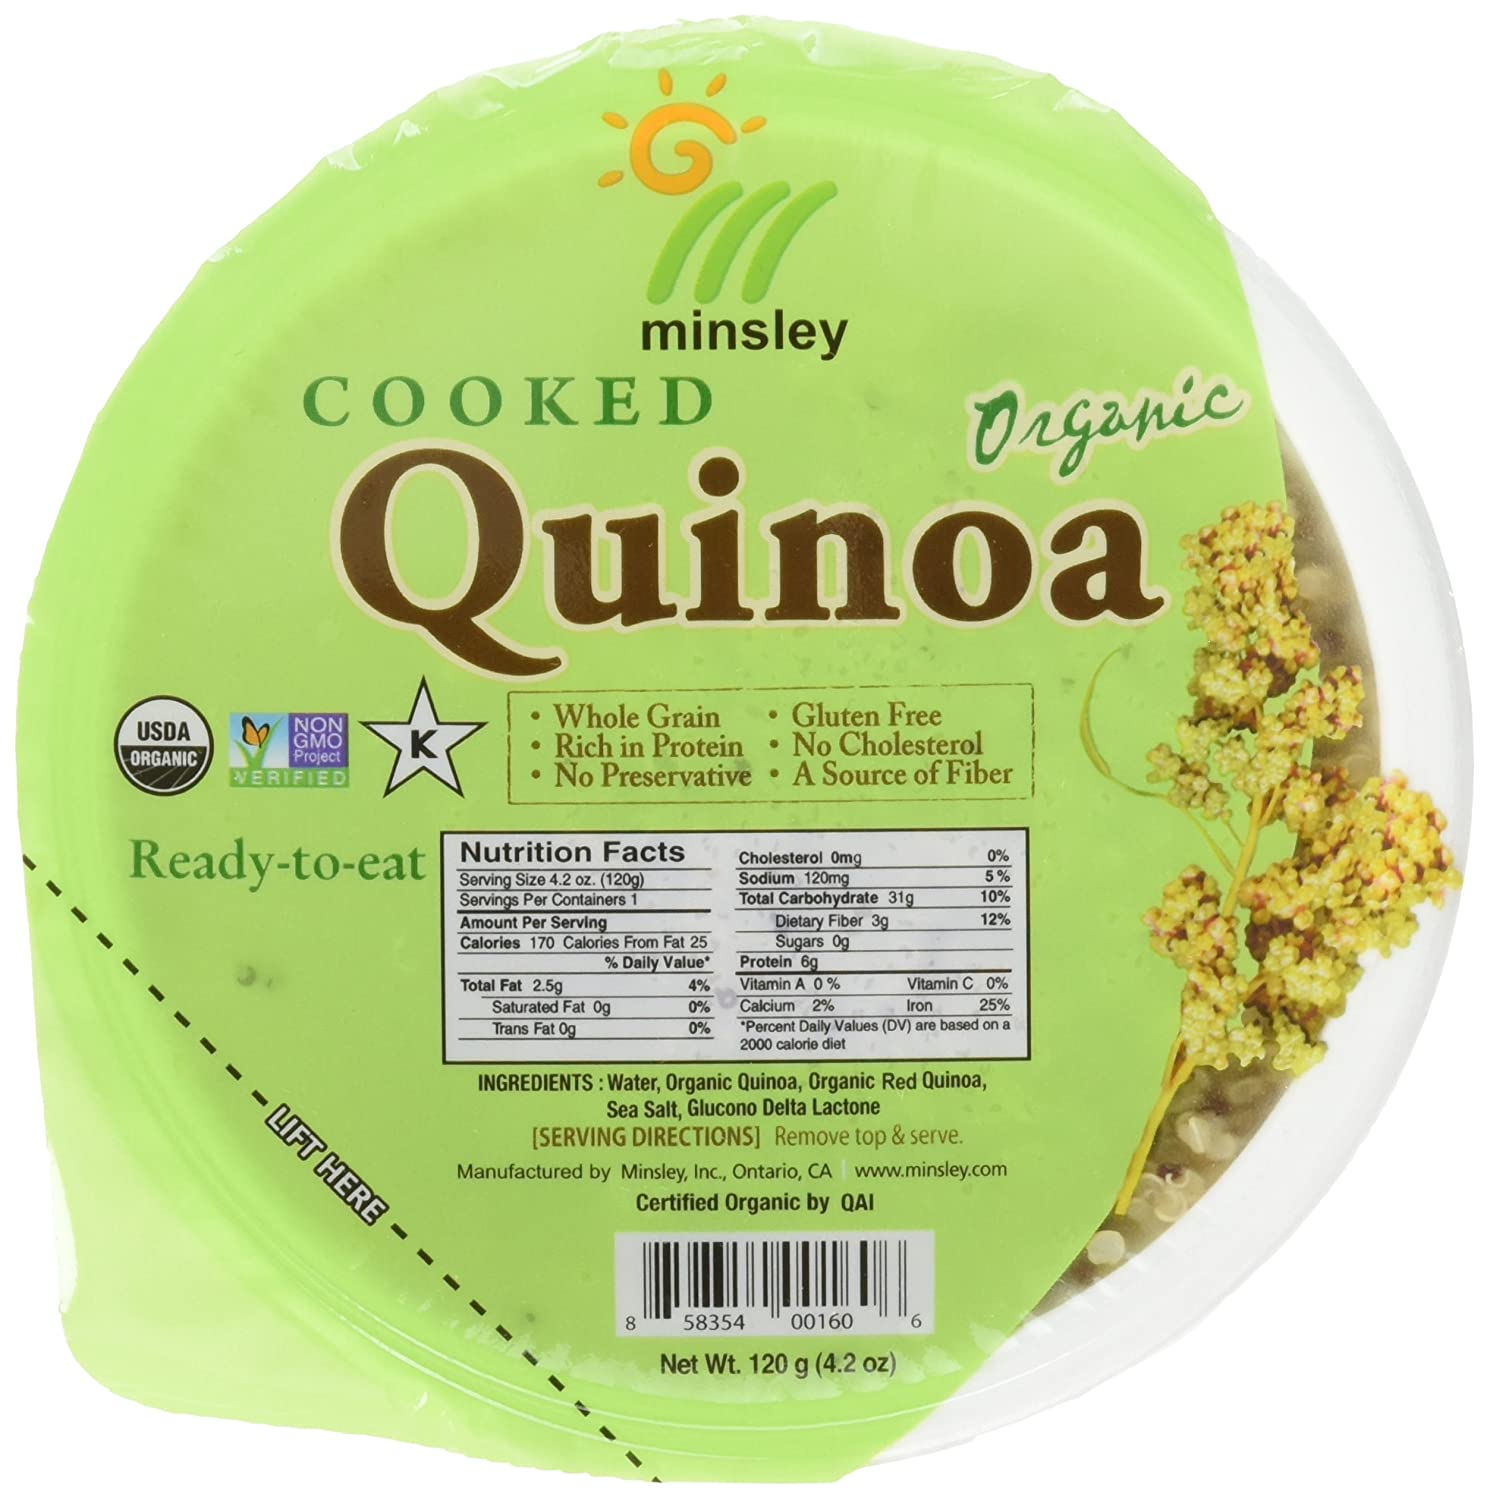 Minsley Cooked Organic Quinoa, 4.2 oz. (Pack of 12)